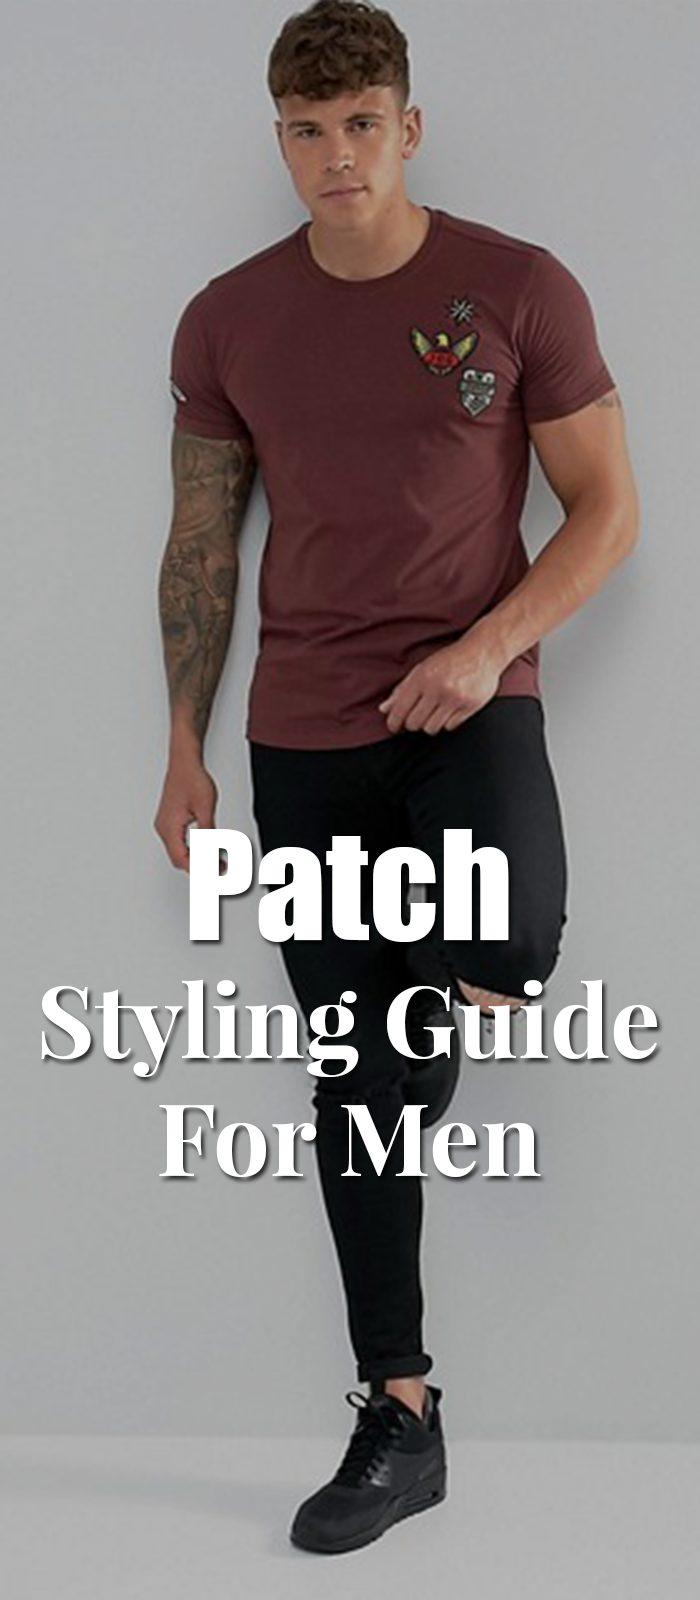 Patch Styling Guide For Men